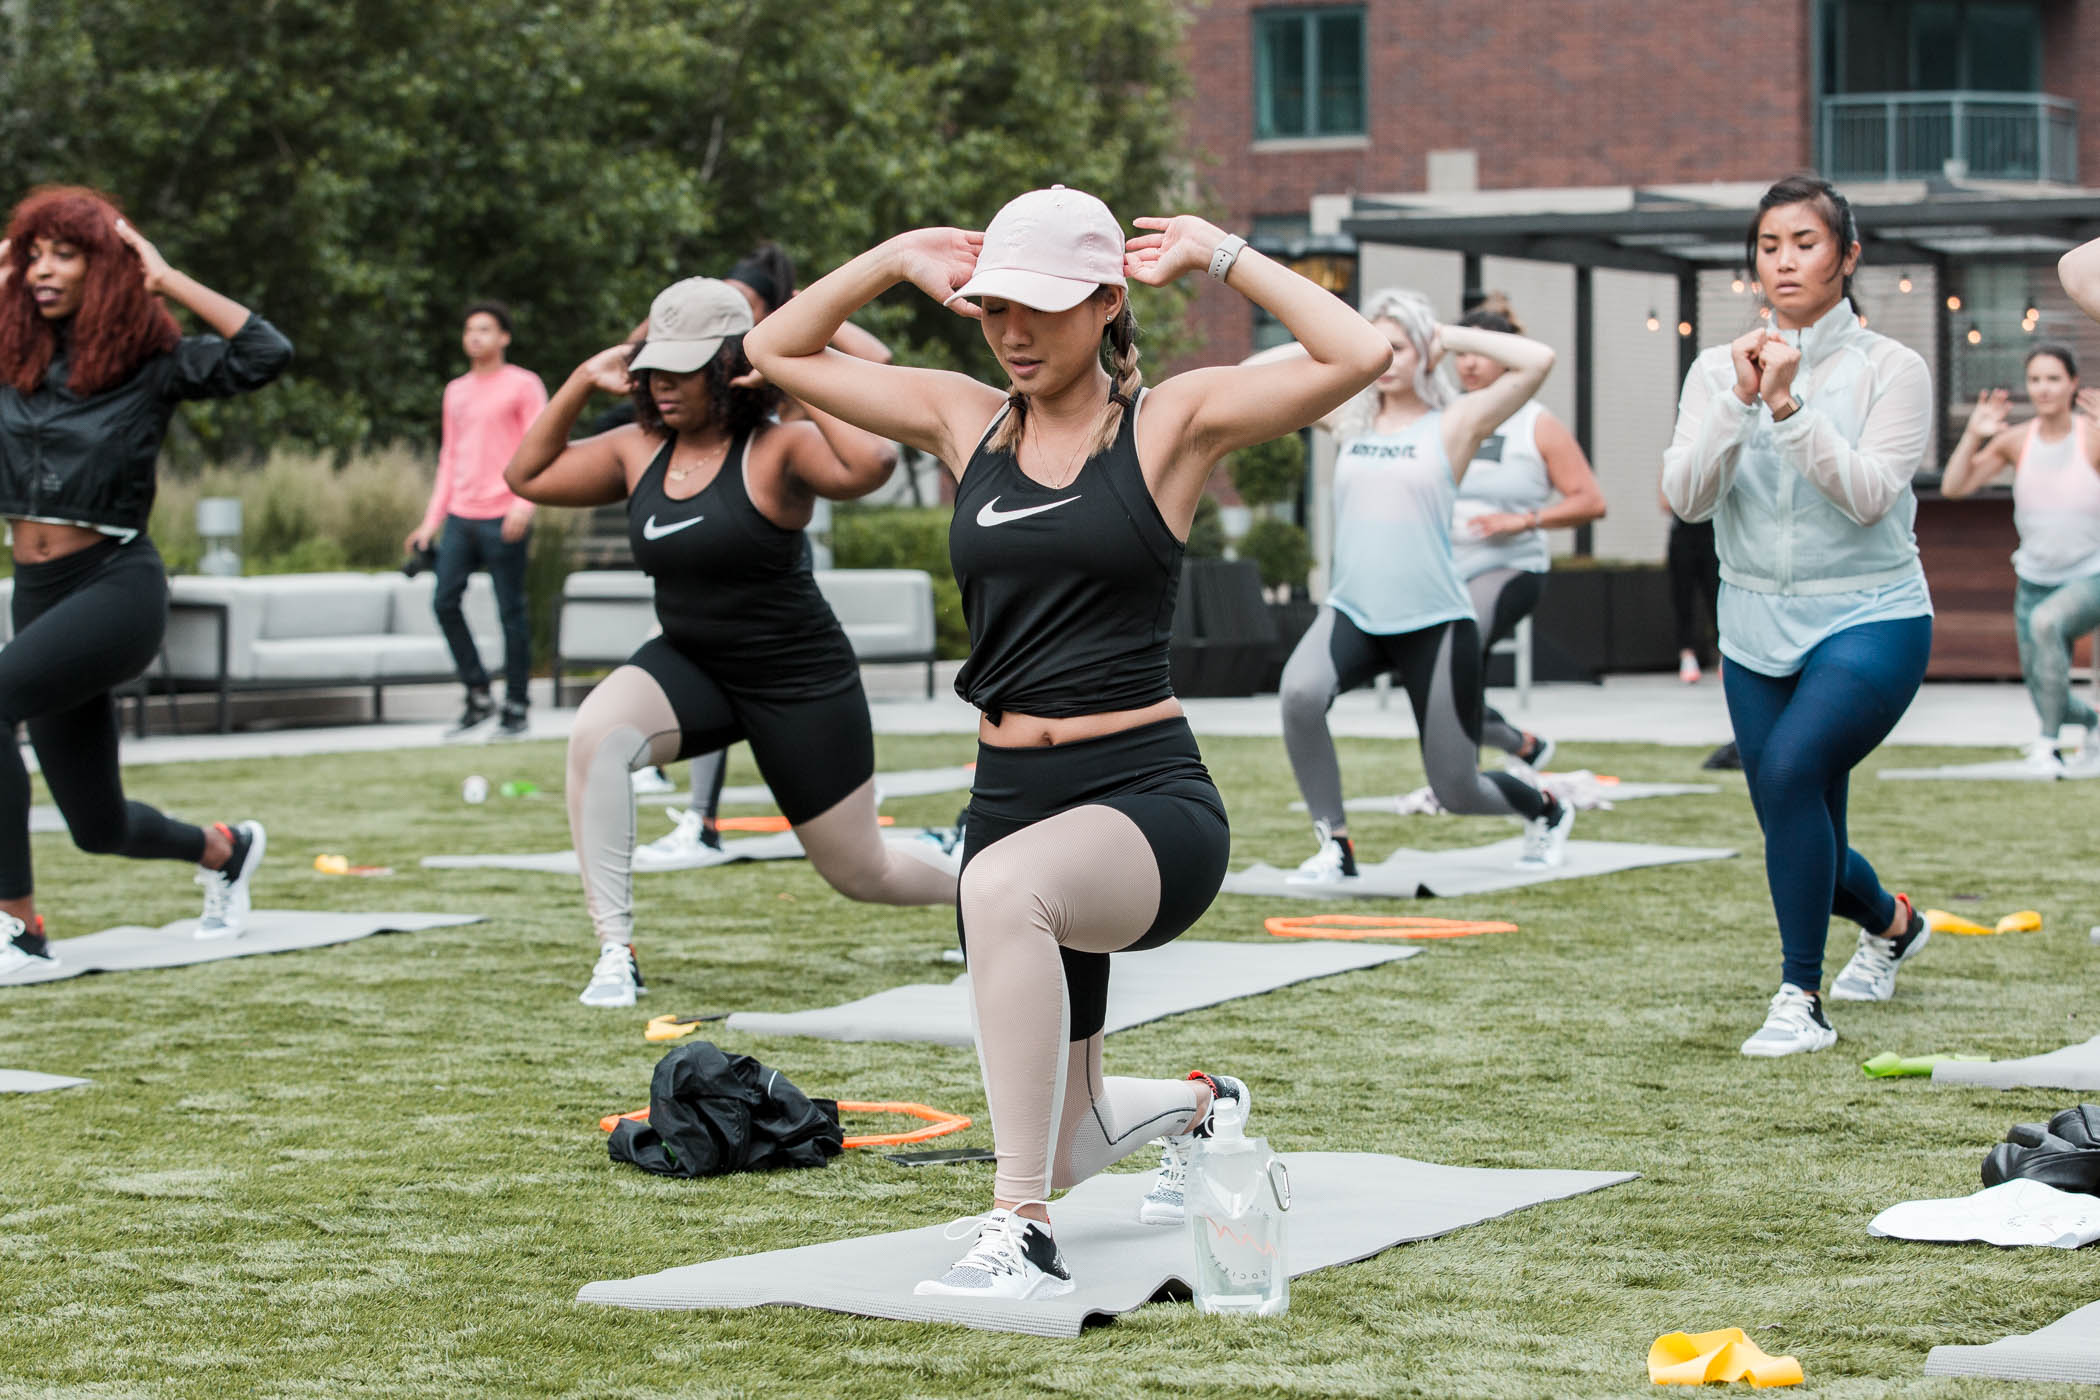 20180619 - Festival Fit - Loew's Rooftop and Chill Chicago-8.jpg